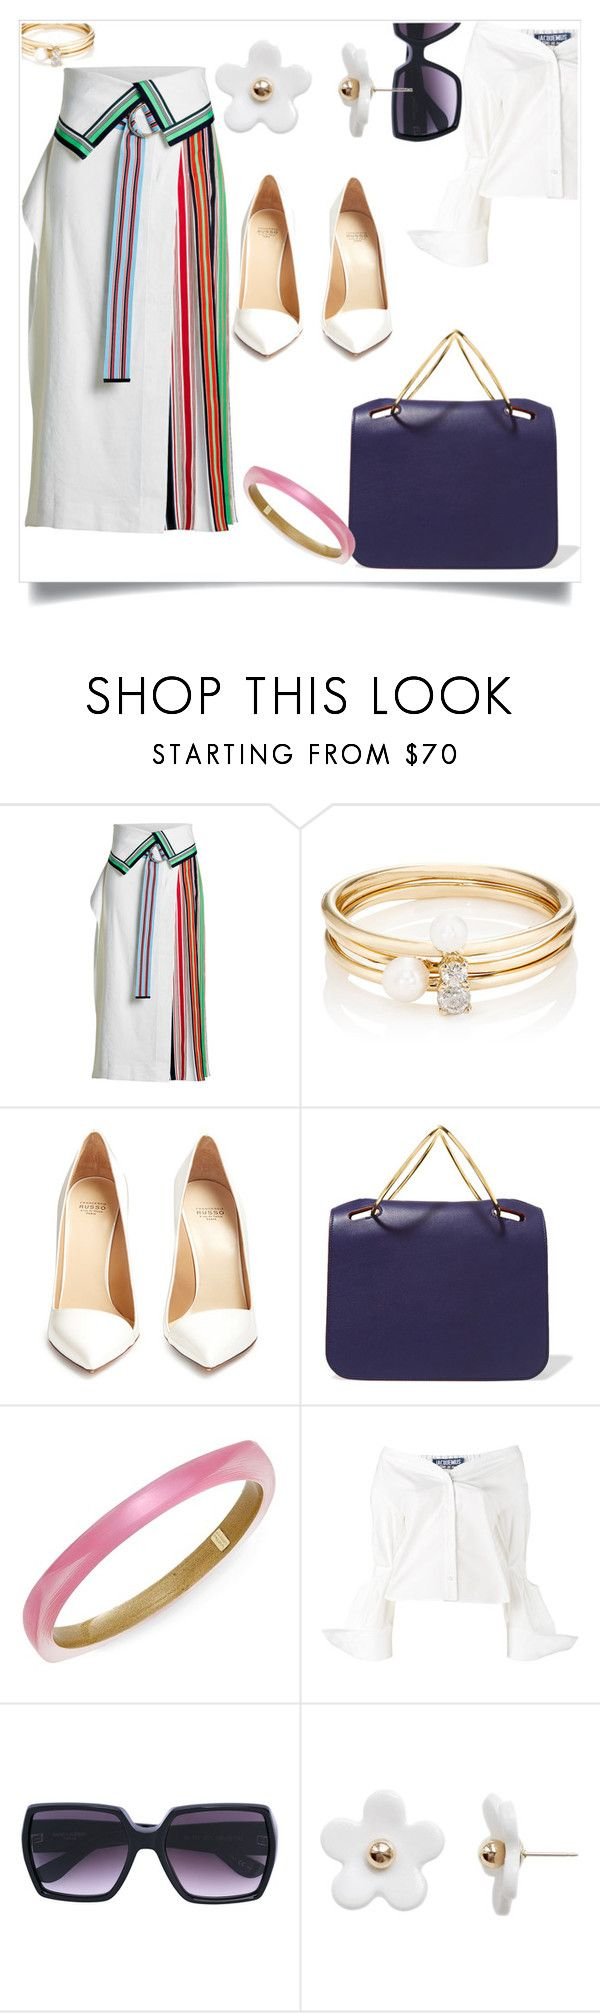 """""""Pleated grosgrain-trimmed linen-blend and georgette skirt"""" by angy-beurskens ❤ liked on Polyvore featuring Diane Von Furstenberg, Loren Stewart, Francesco Russo, Roksanda, Alexis Bittar, Jacquemus and Poporcelain"""